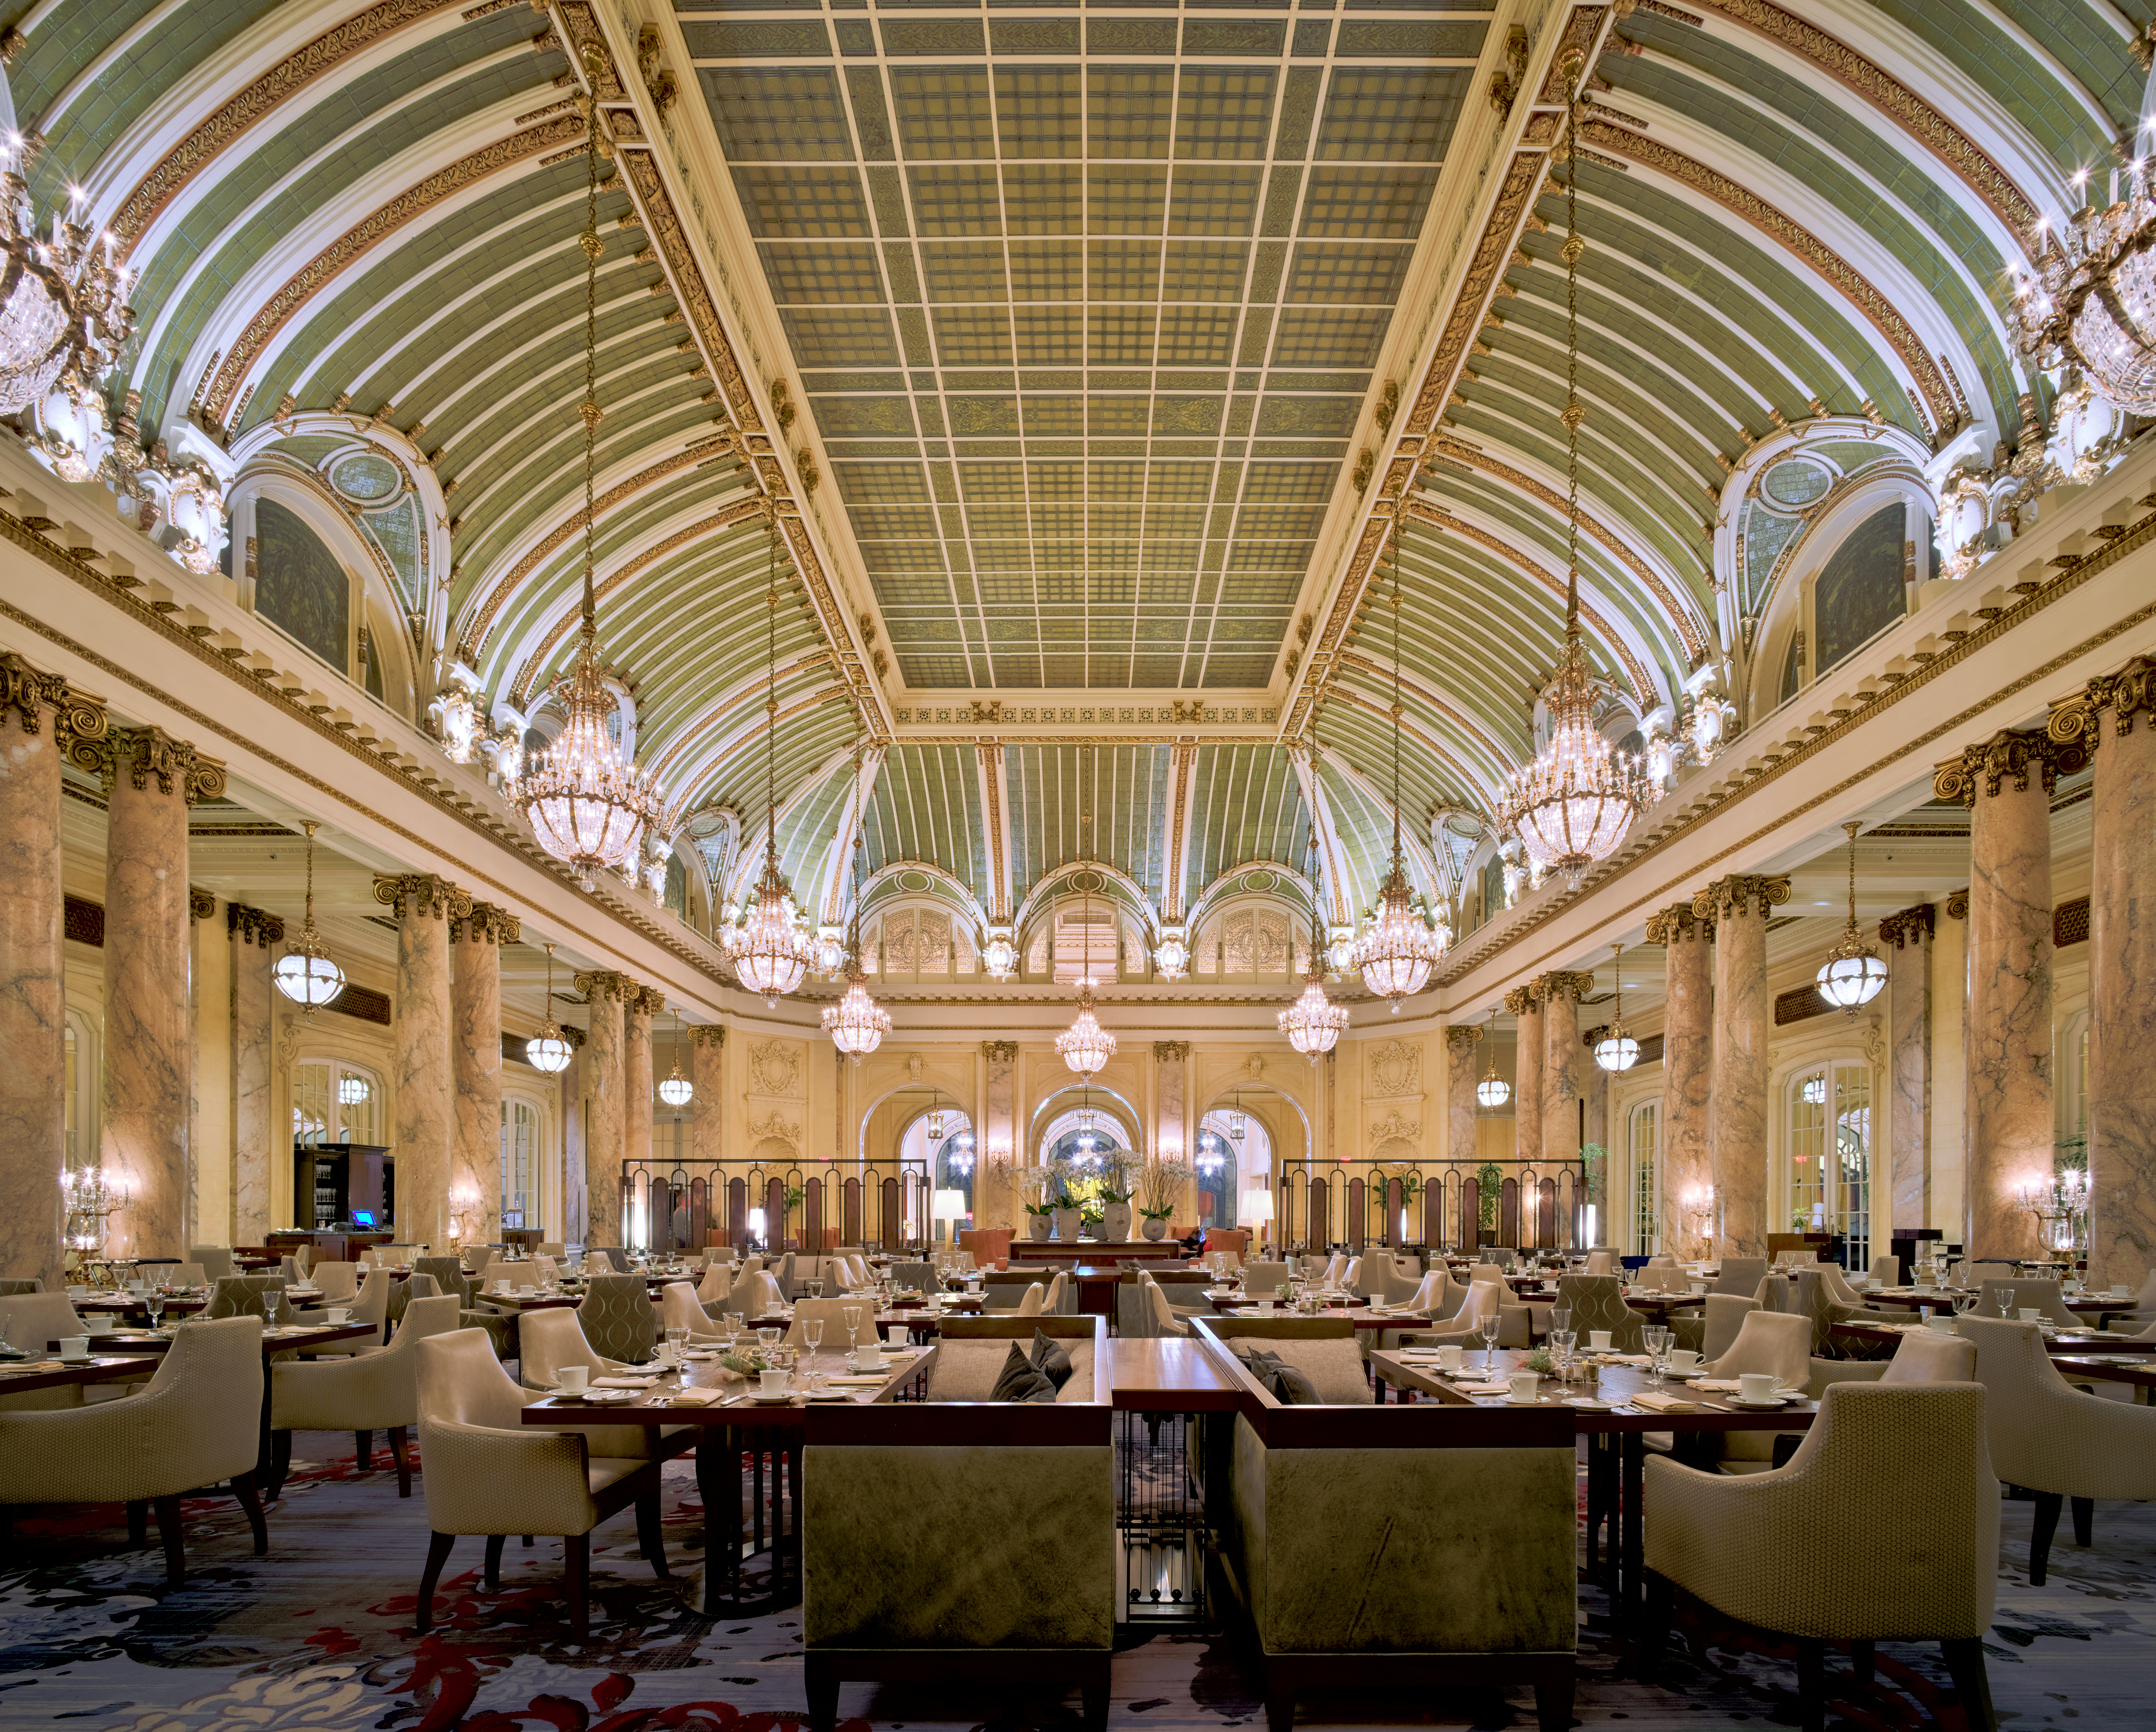 File:Garden Court at the Palace Hotel, San Francisco 2.jpg ...